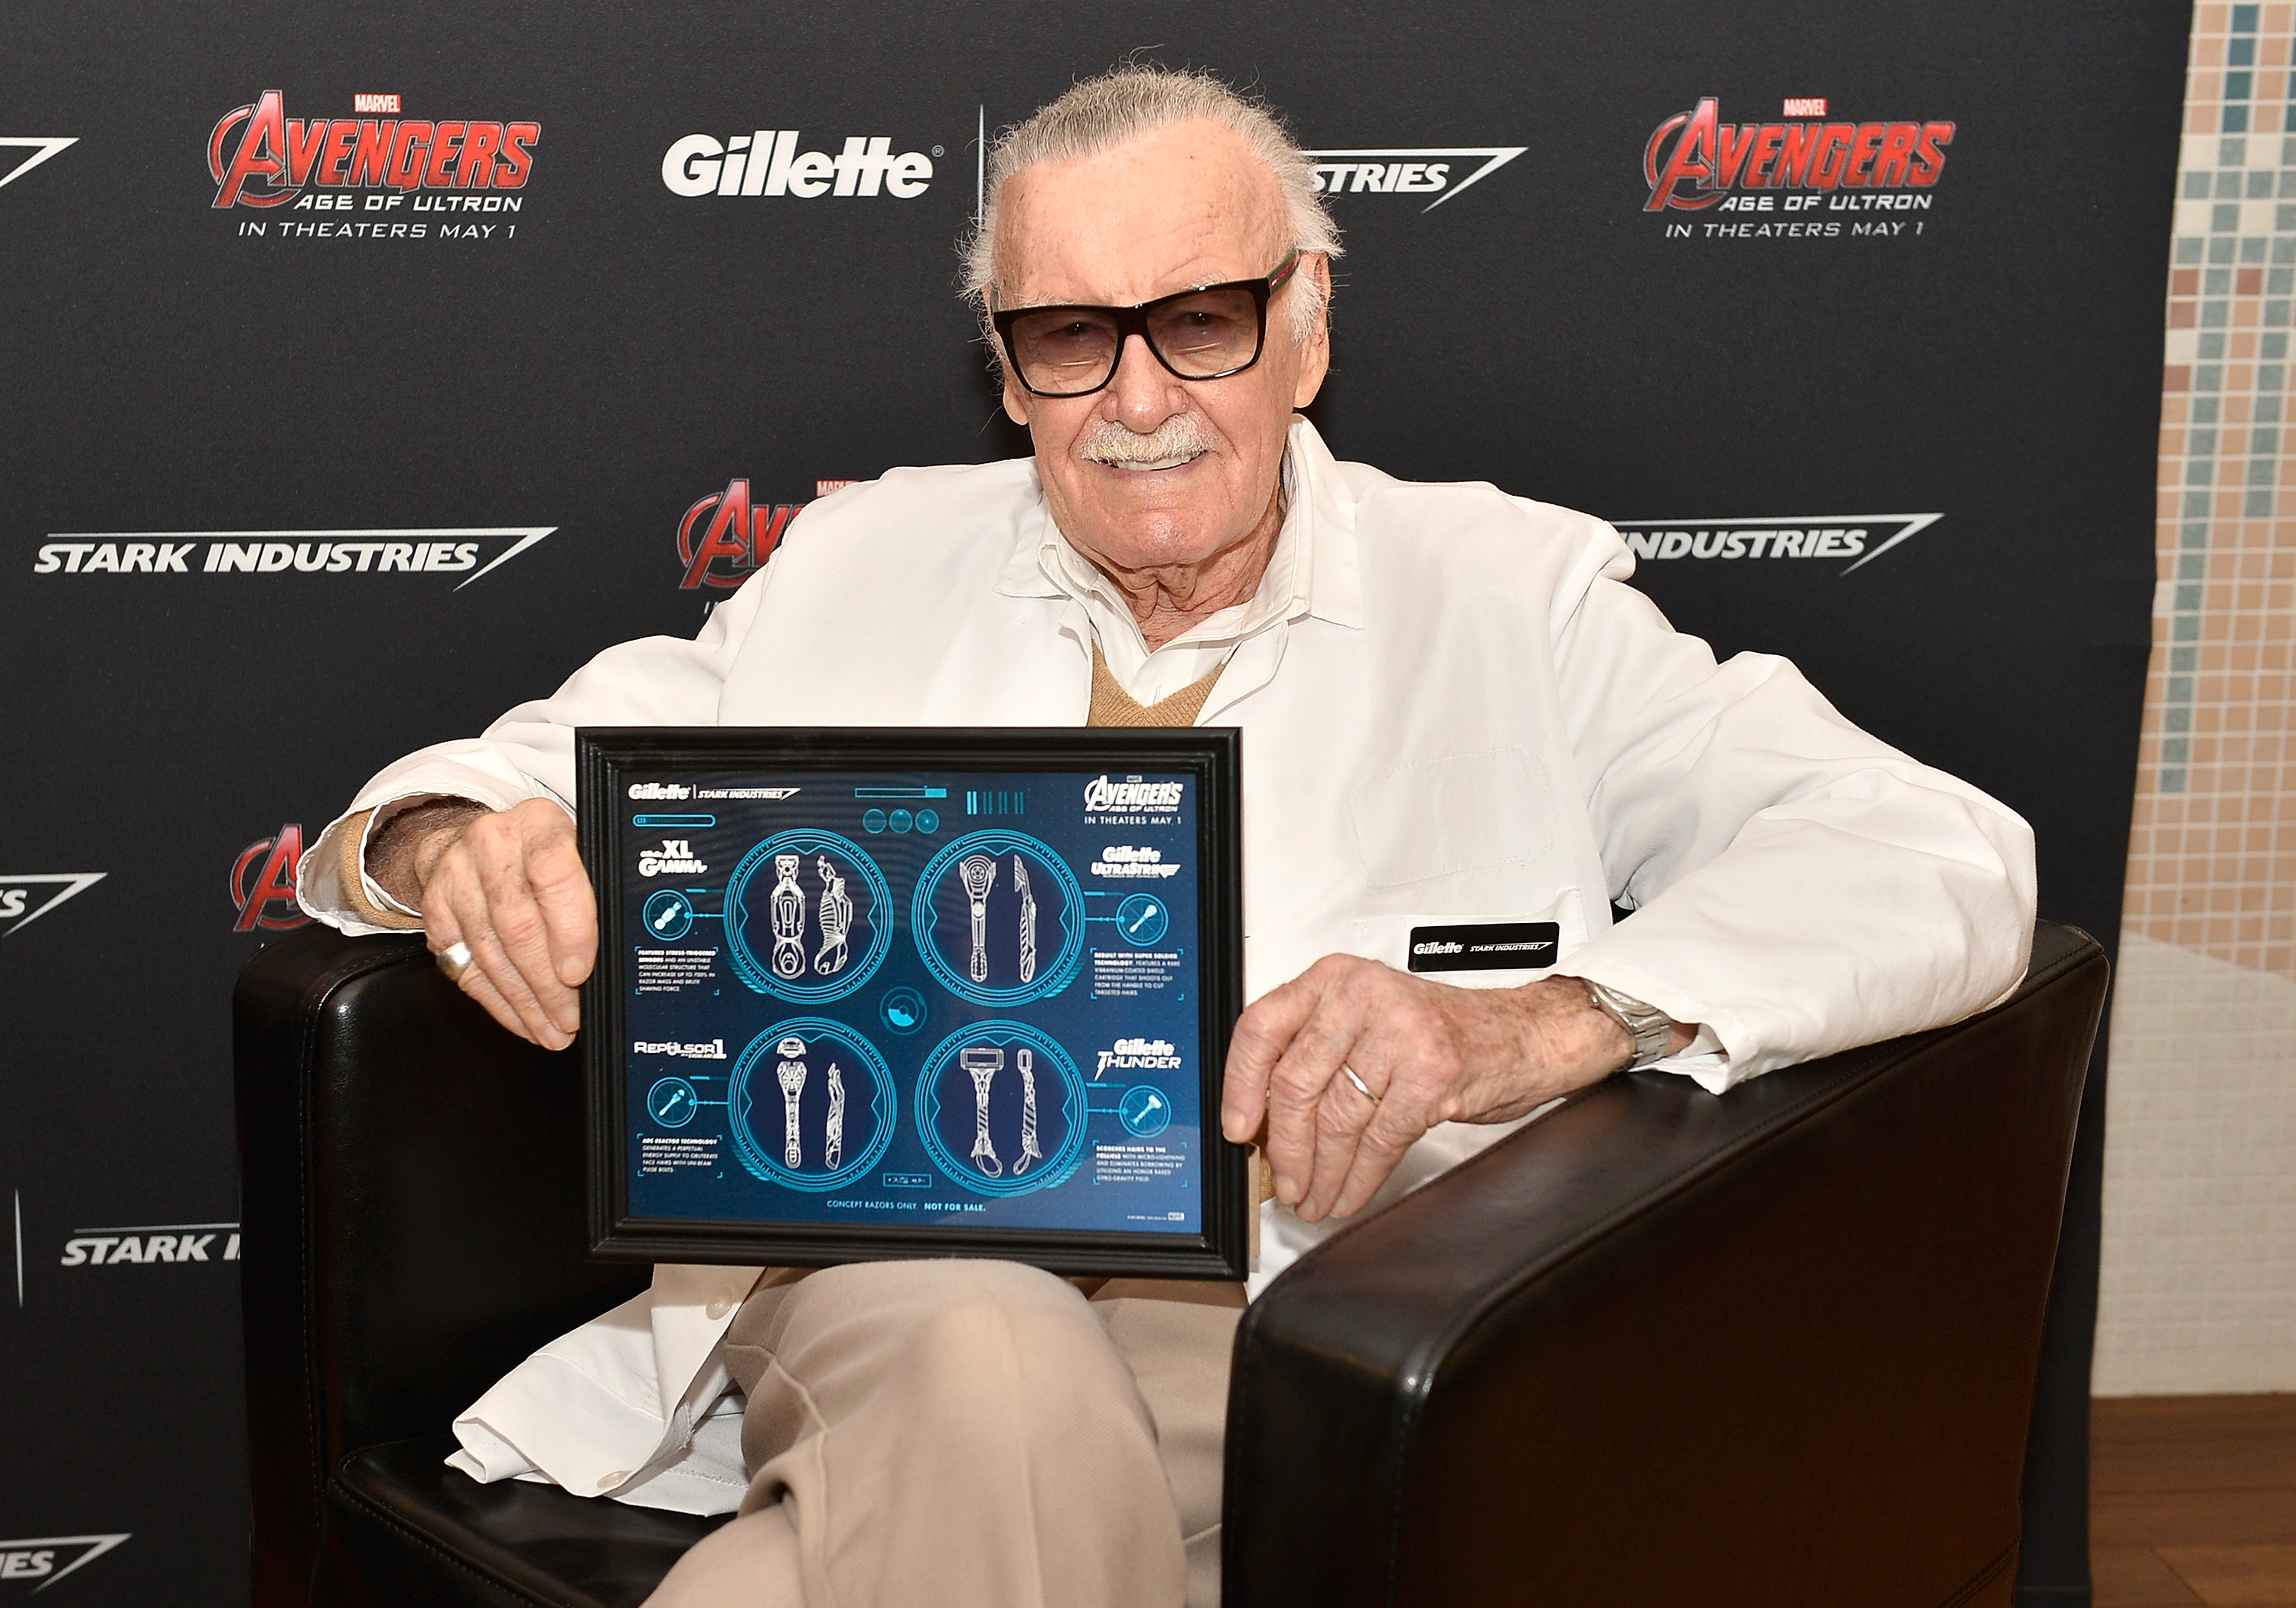 Stan Lee attends the Stark Industries and Gillette announcement of a collaboration to develop prototype razors at Gillette's World Shaving Headquarters as part of the marketing campaign to support Marvel's Avengers: Age of Ultron. (Photo by Paul Marotta/Getty Images for Gillette)